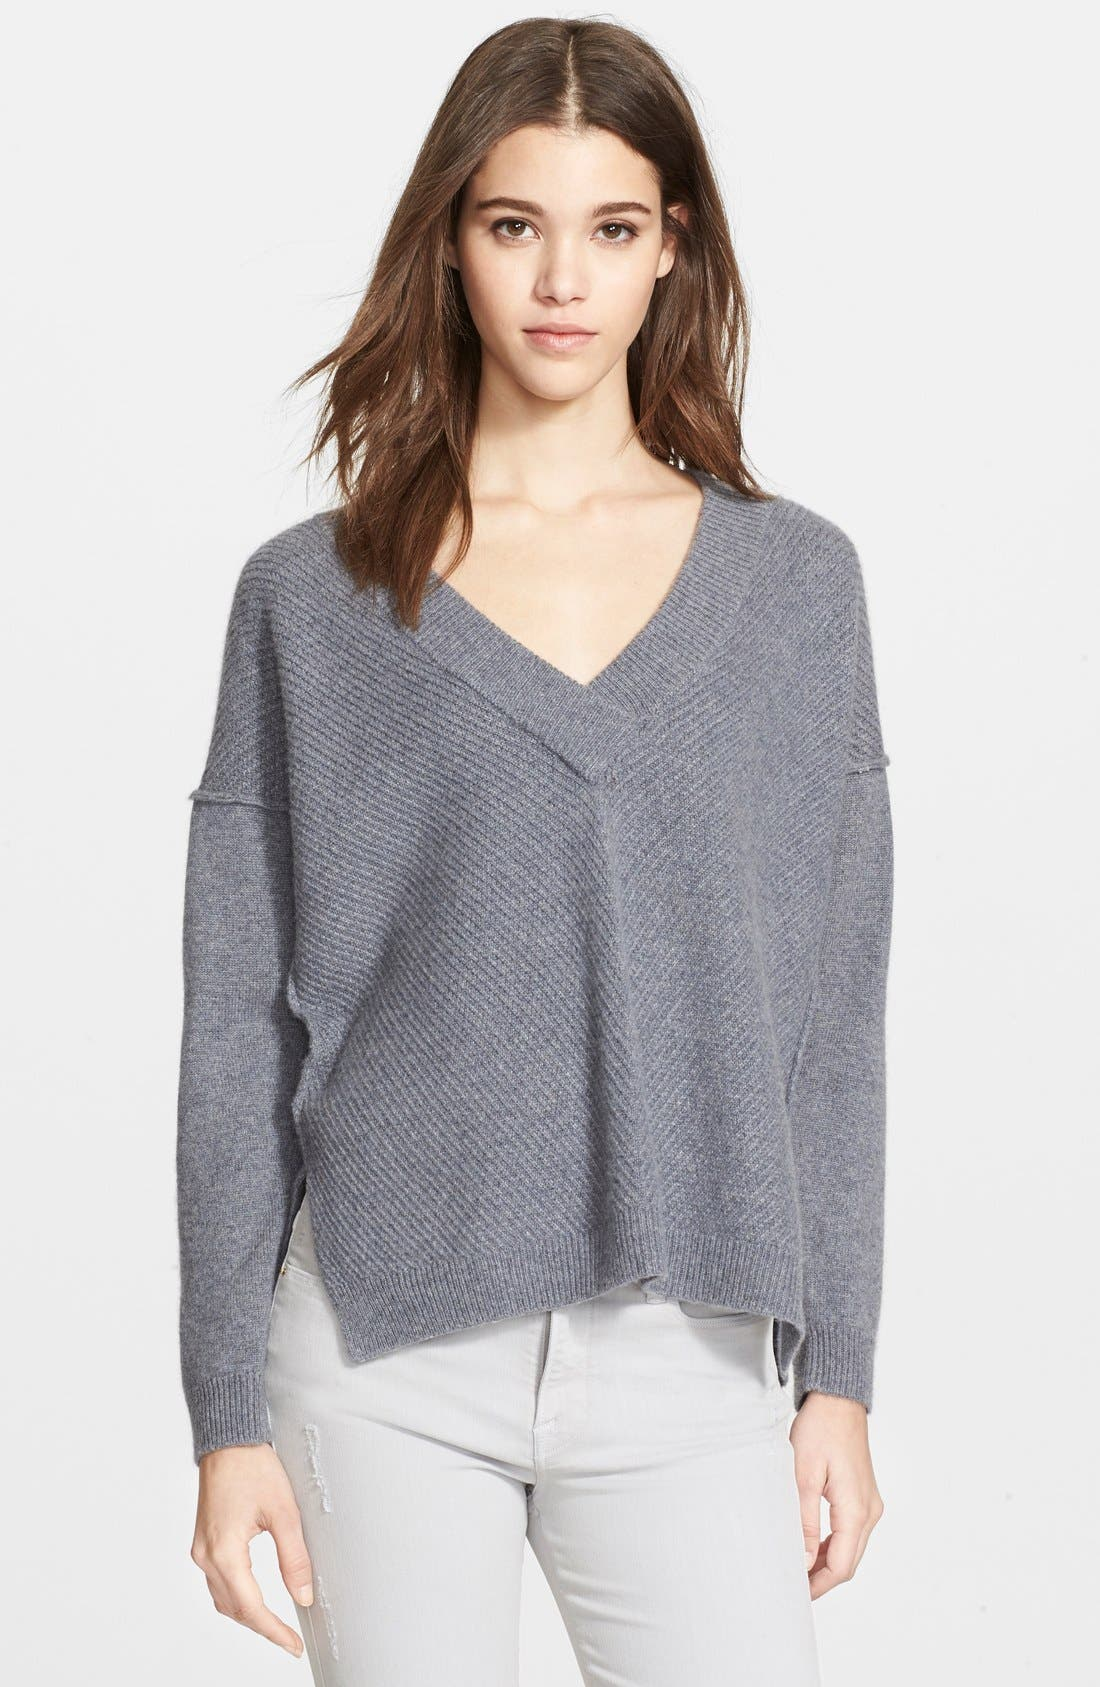 Alternate Image 1 Selected - Frame Denim 'Le Boyfriend' V-Neck Cashmere Sweater